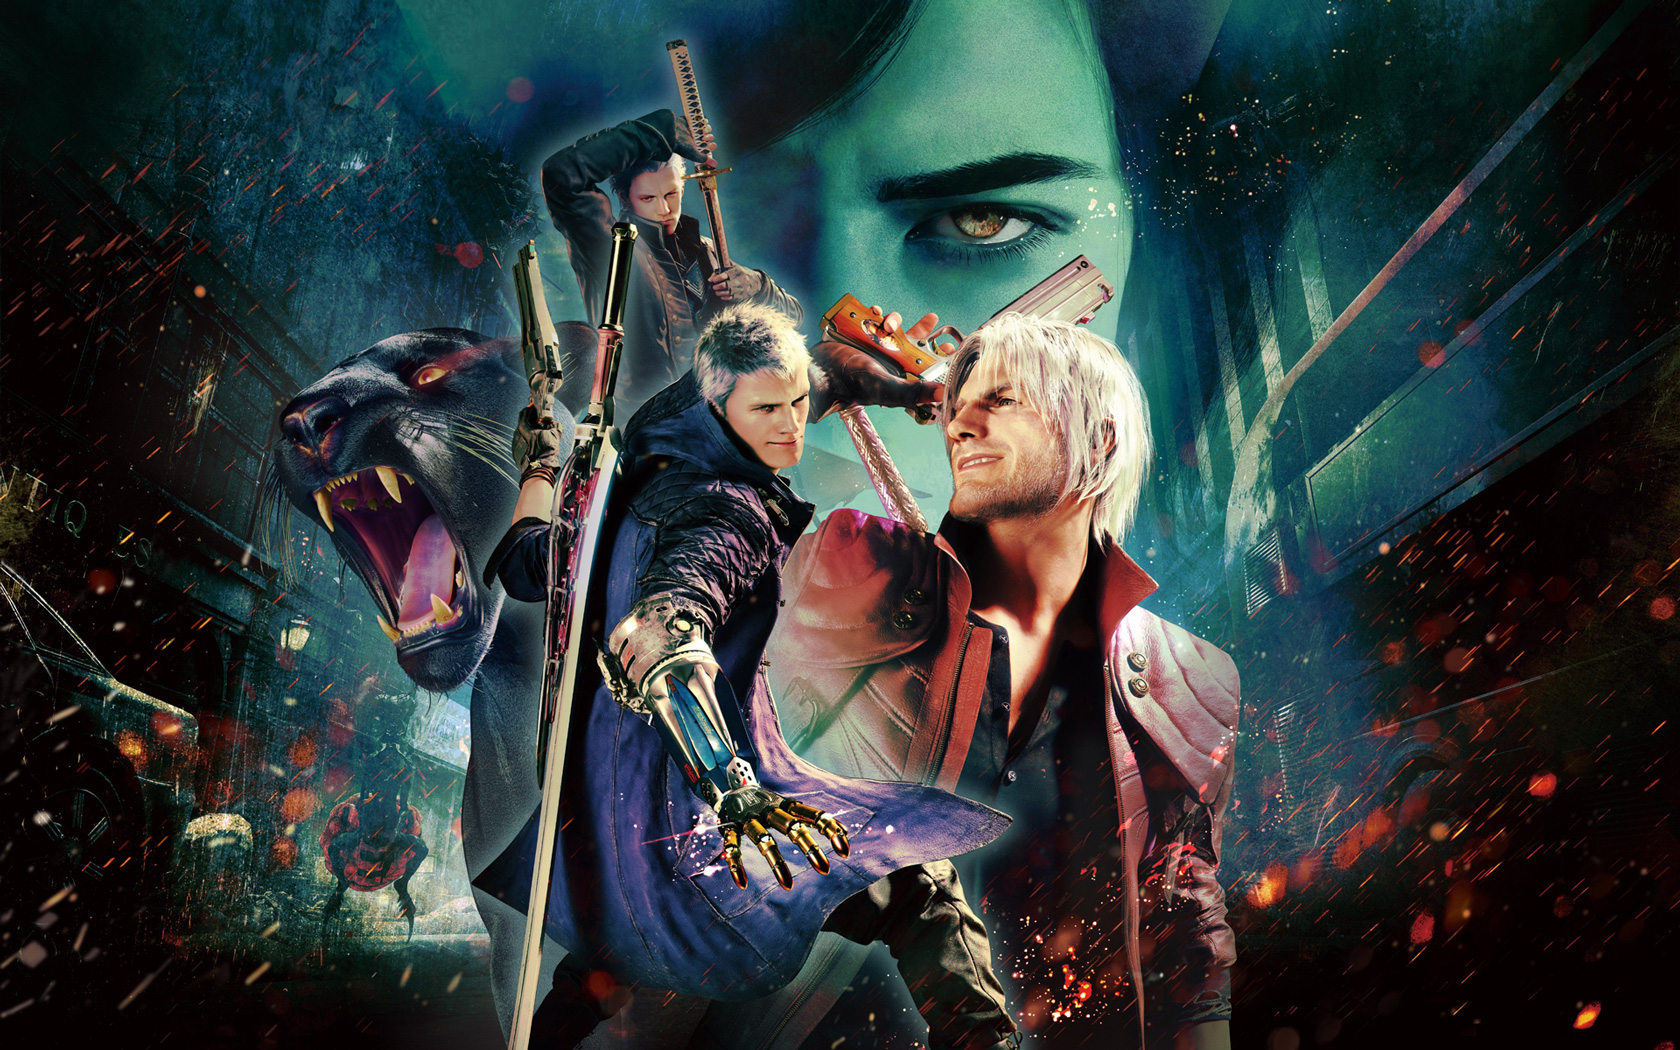 Devil May Cry 5 Wallpaper in 1680x1050